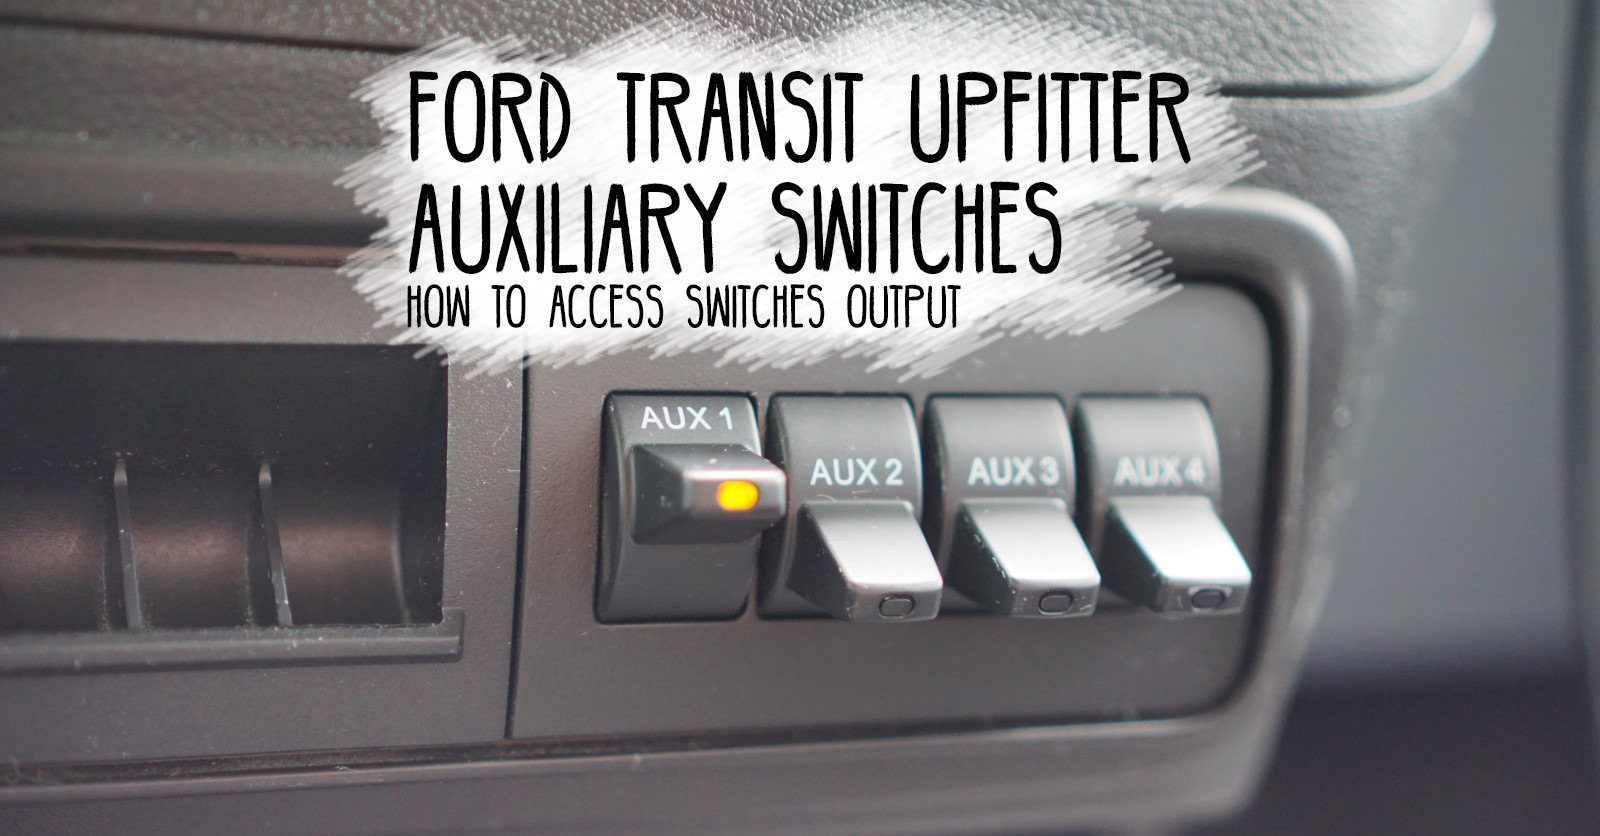 small resolution of ford transit upfitter auxiliary switches faroutride rh faroutride com 2015 ford transit door lock wiring diagram 2015 ford transit aux power wiring diagram